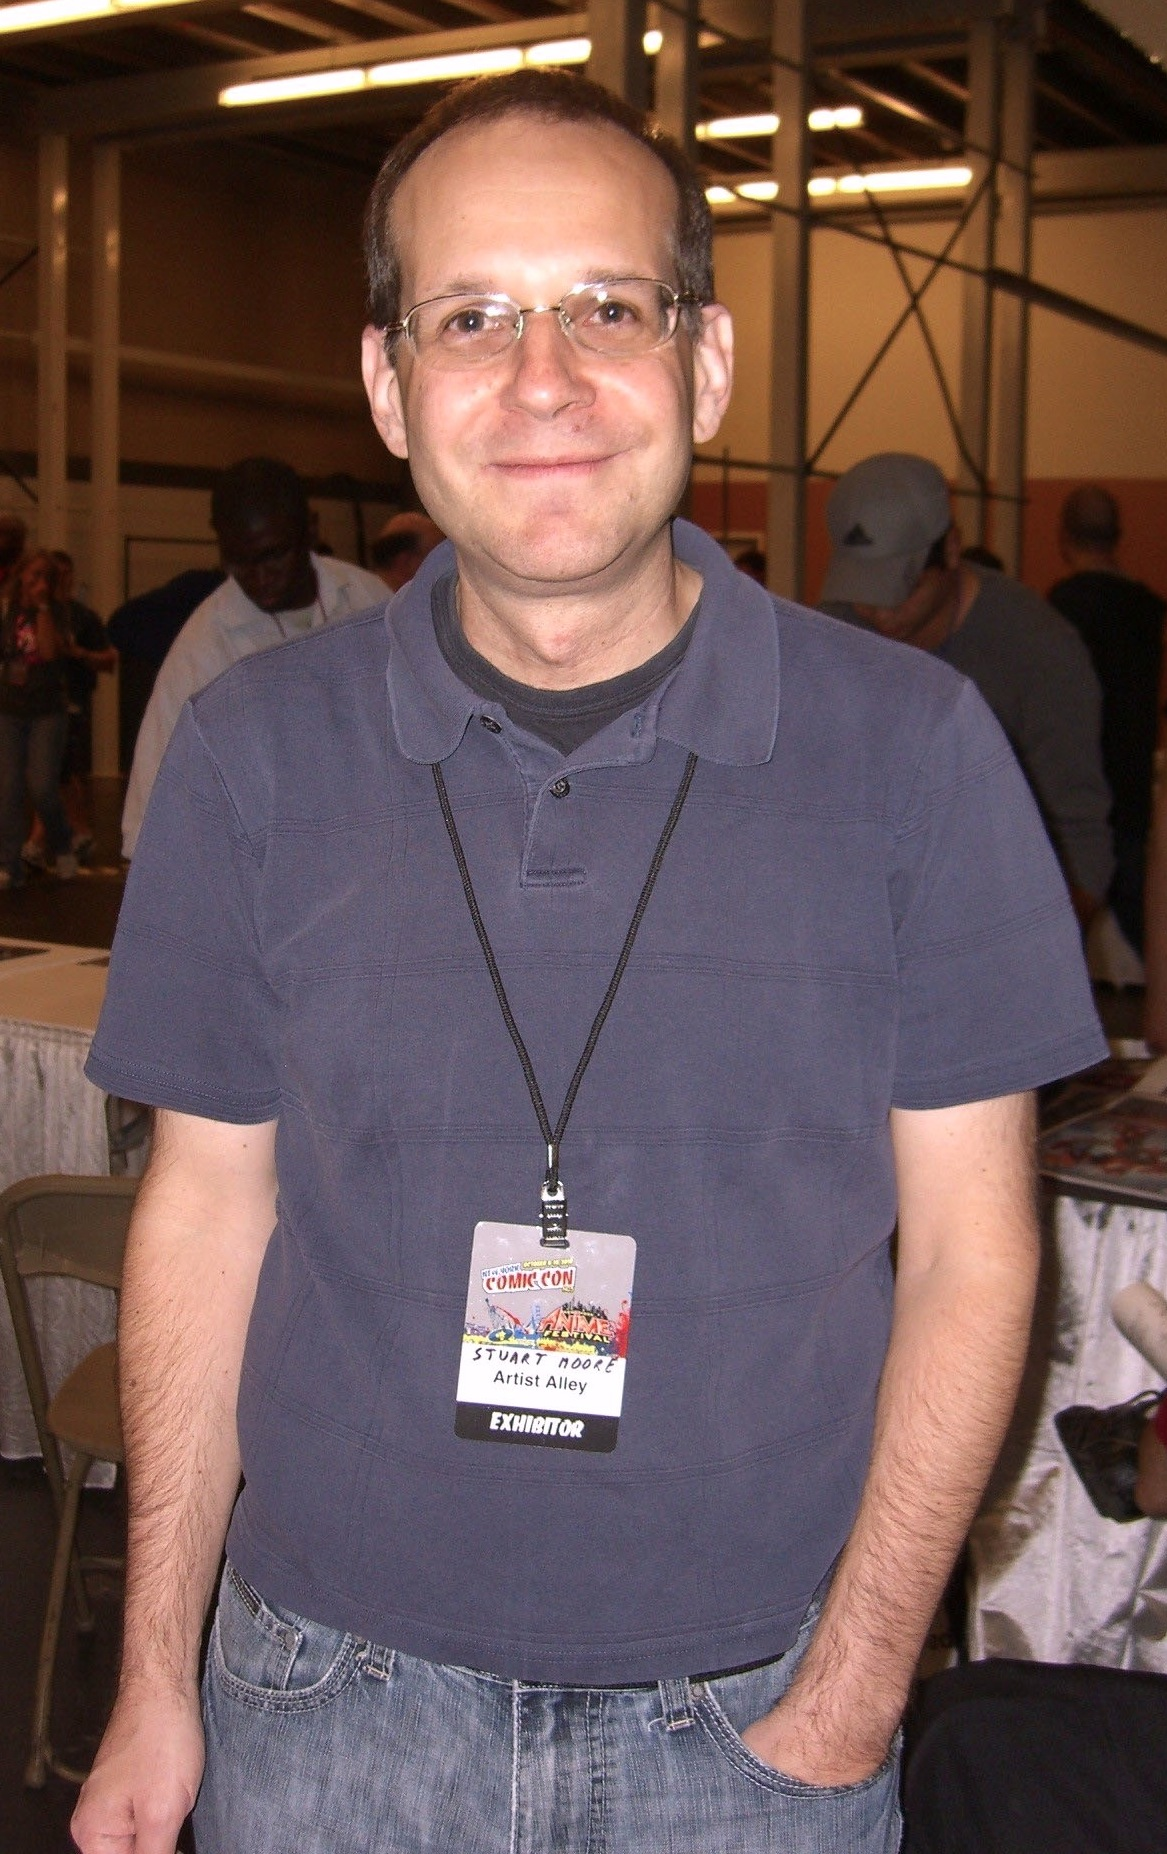 Moore at the [[New York Comic Con]] in Manhattan, October 10, 2010